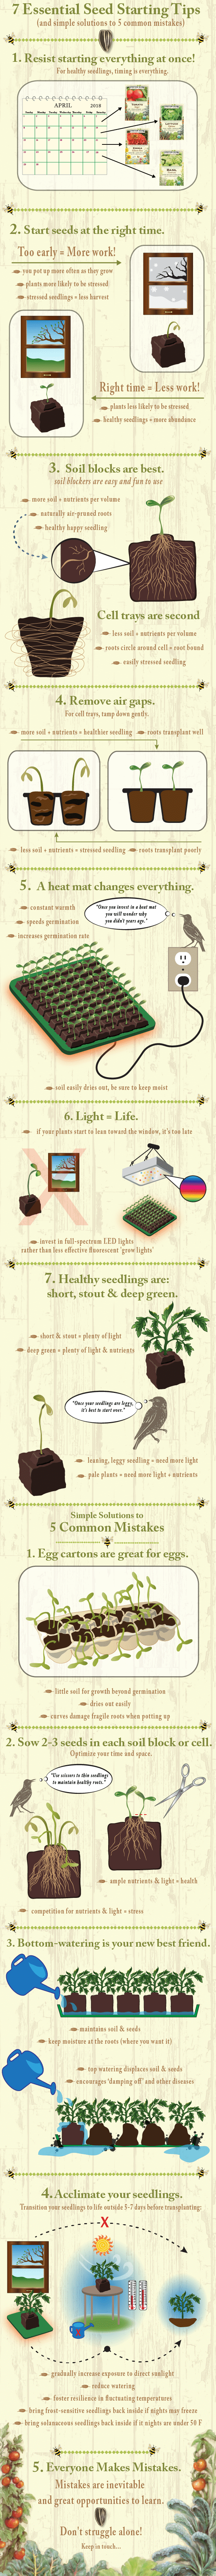 infographic on seed starting practices